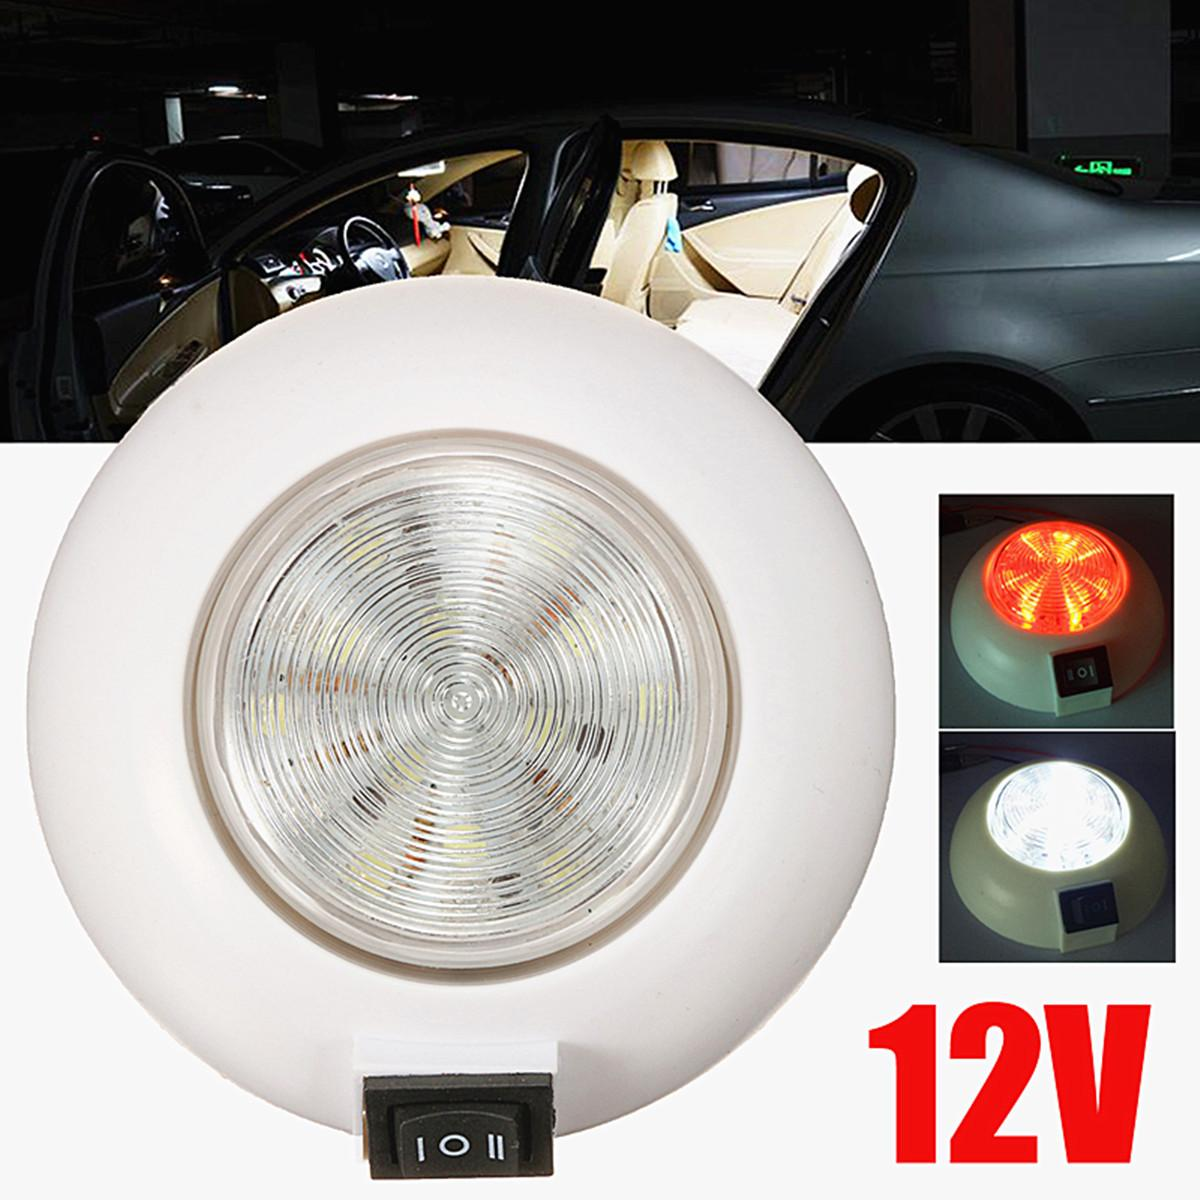 2019 12V Car LED Dome Light Dual Color Whiteu0026Amp;Red For RV Car Boat  Interior Lamp Dome Light Reading Light From Suozhi1991, $19.89 | DHgate.Com